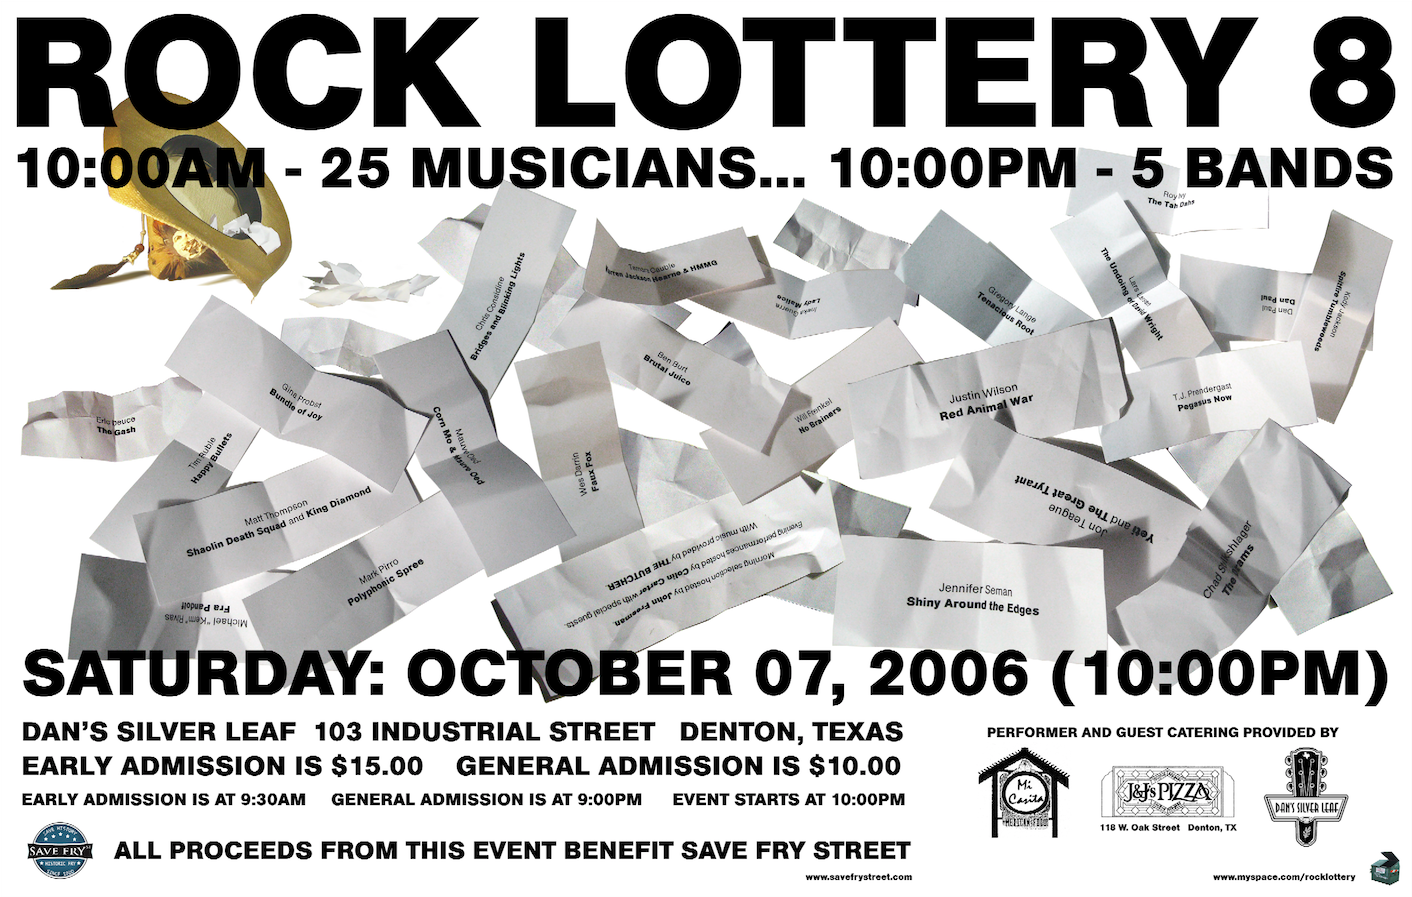 Rock Lottery 8 Flyer